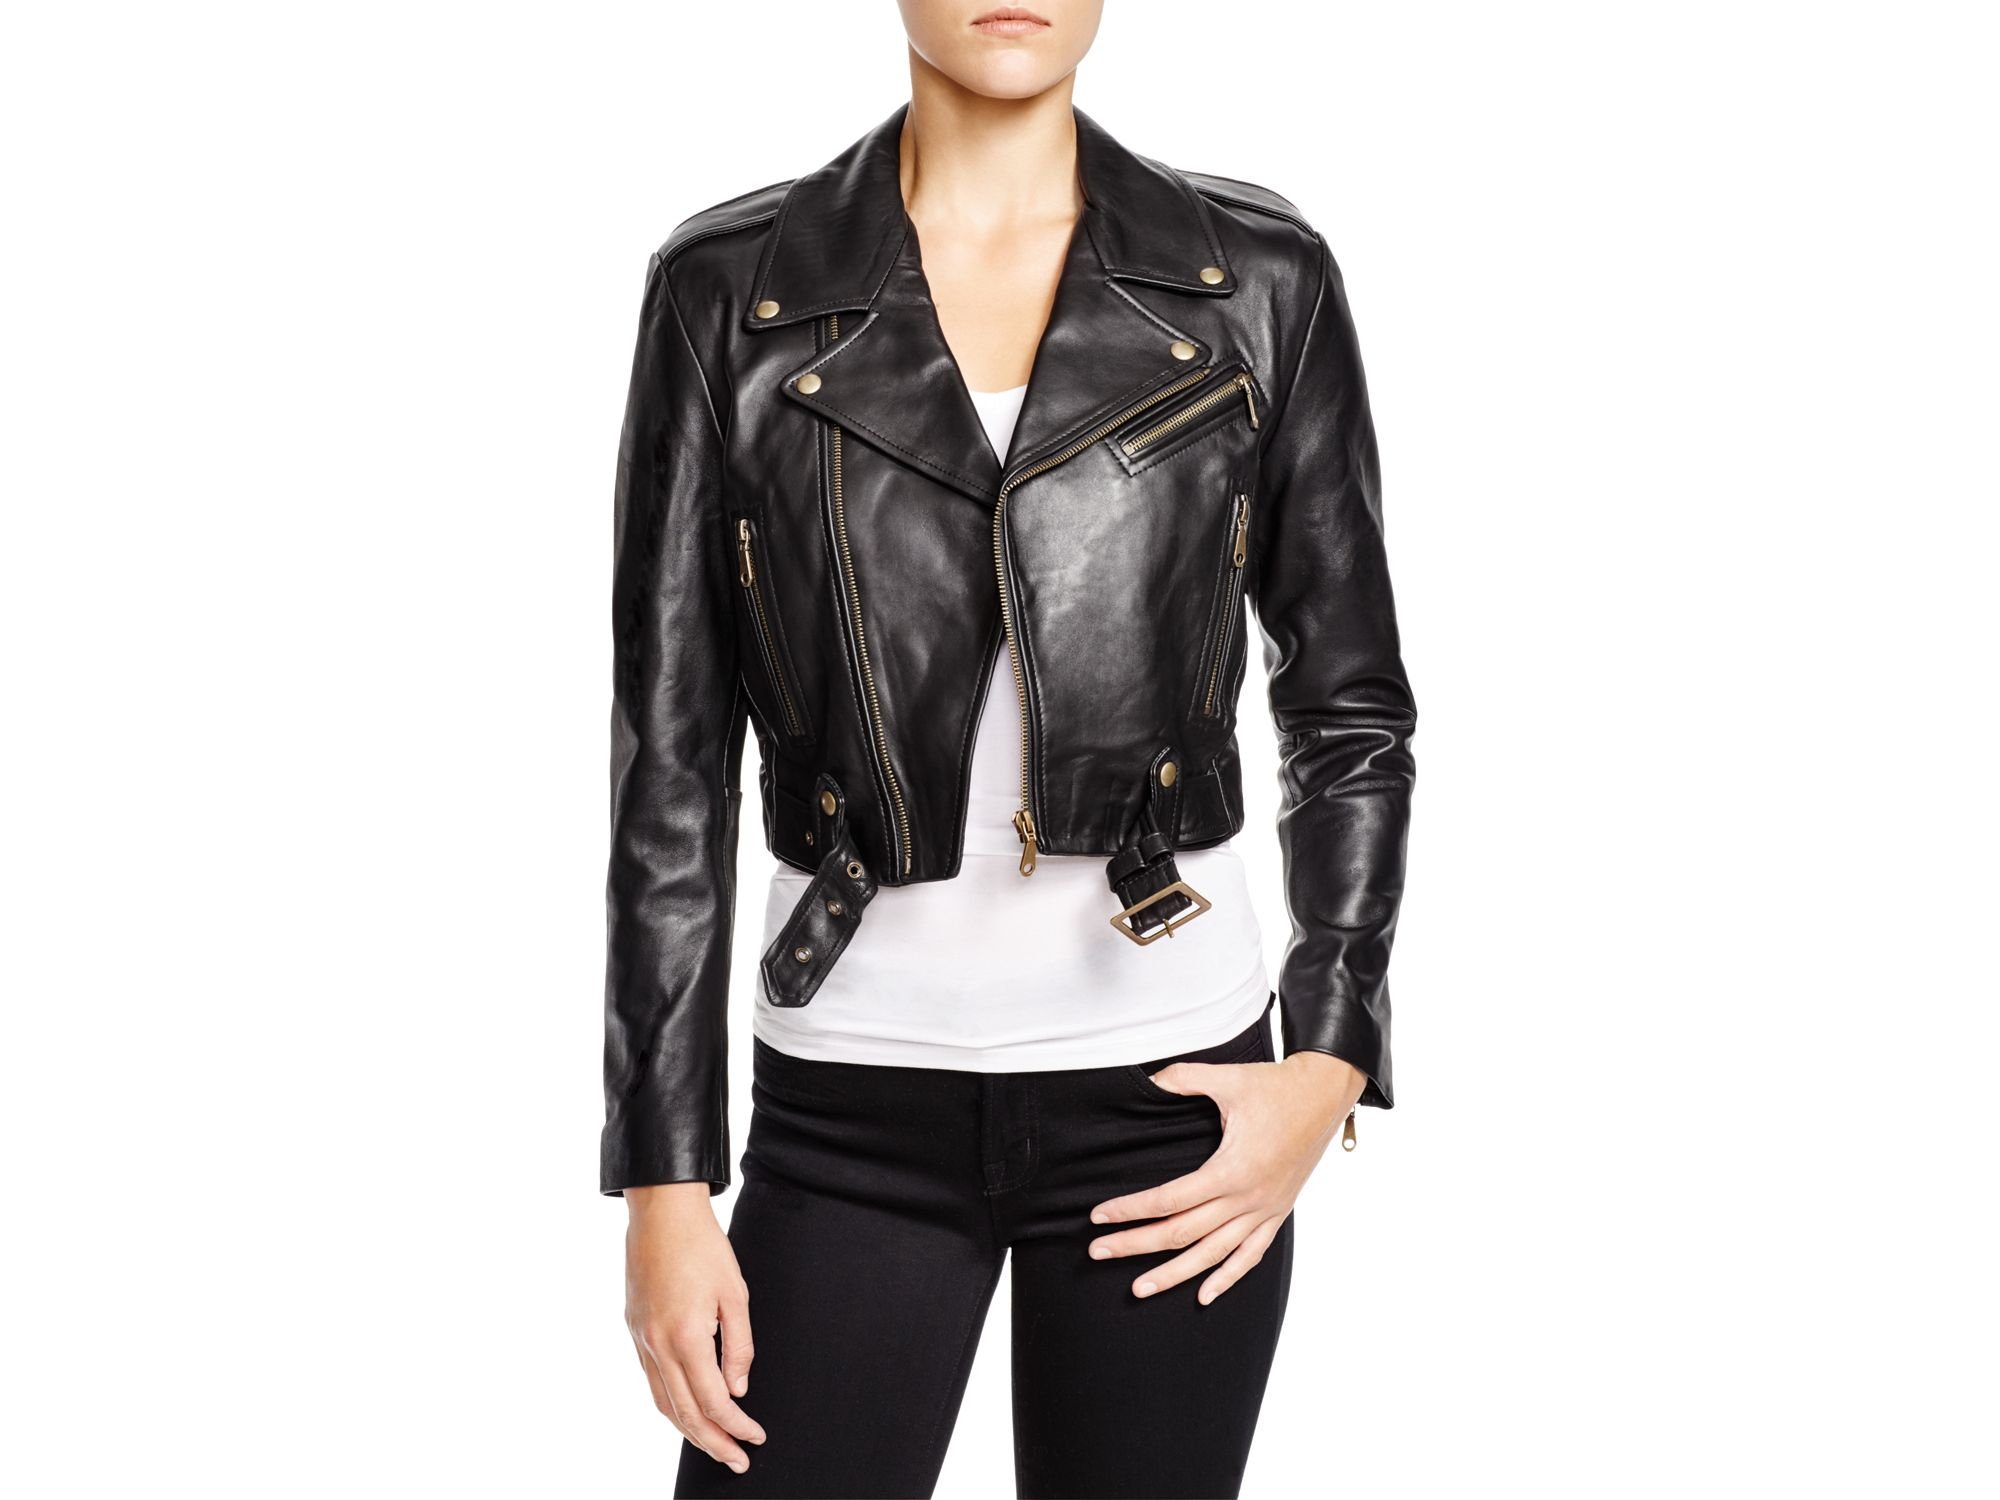 Rebecca minkoff Harpur Cropped Leather Jacket in Black | Lyst